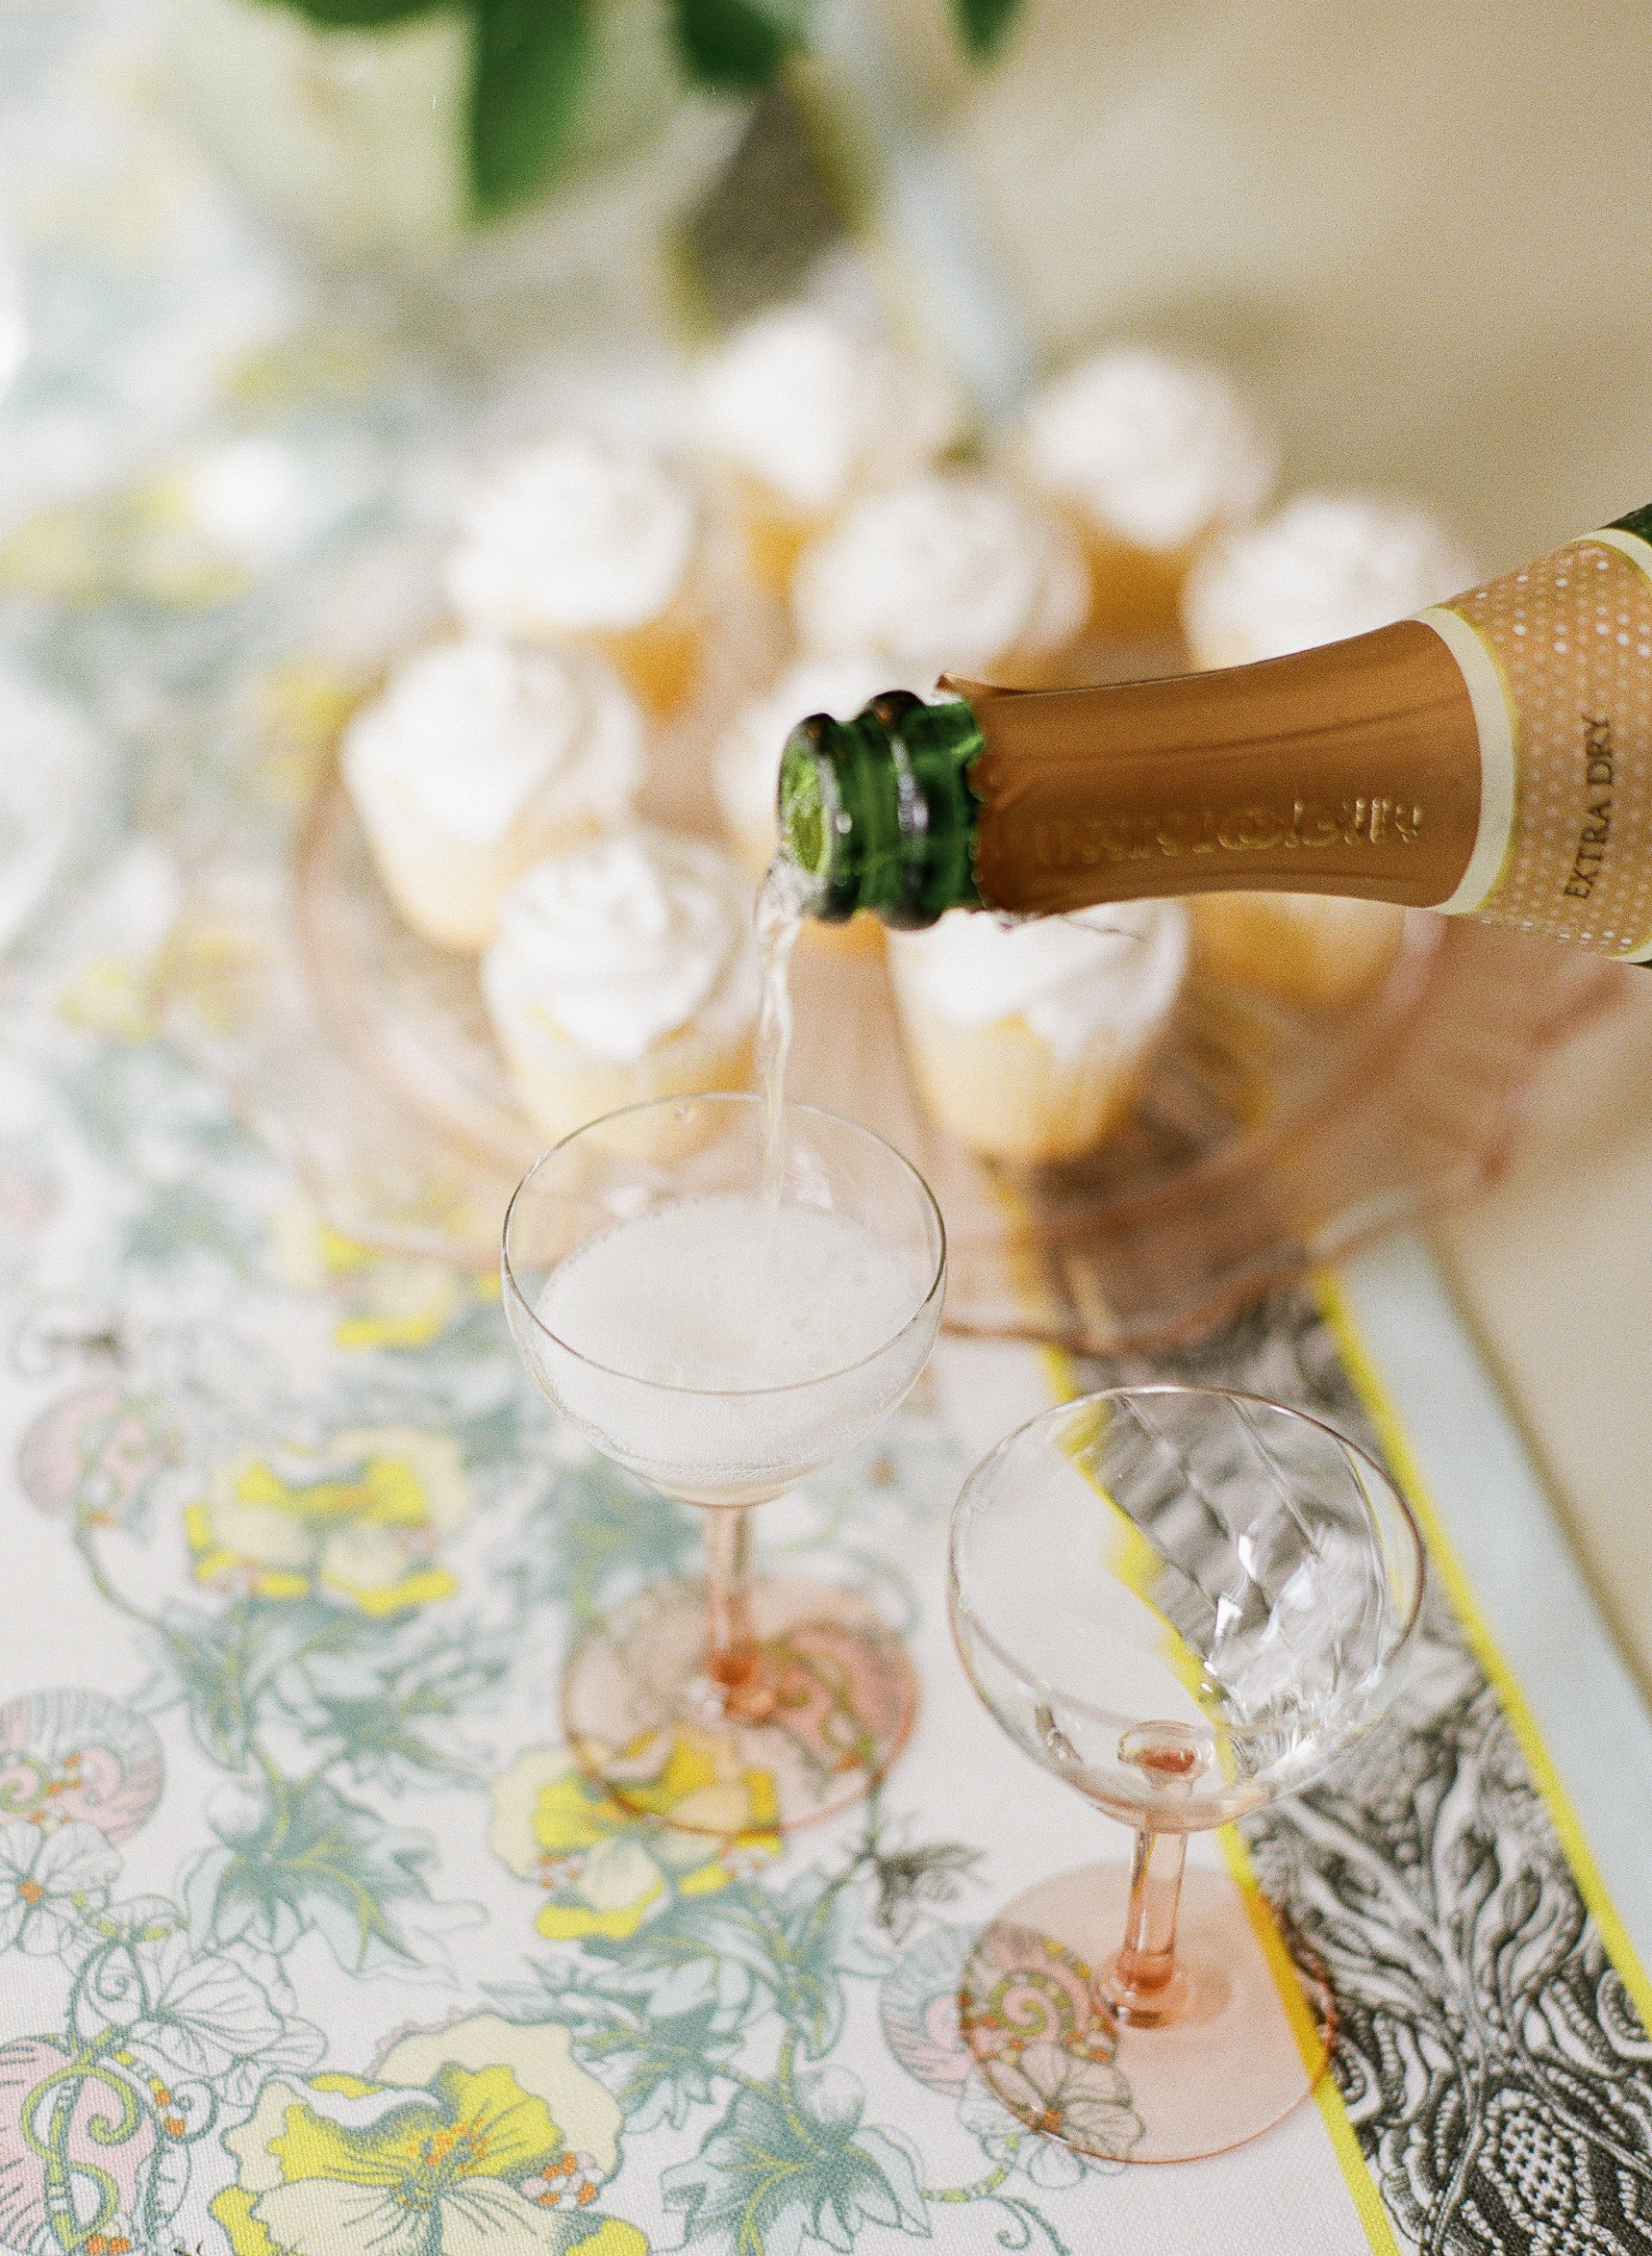 Cheers to 2017 with our Celandine table runner.